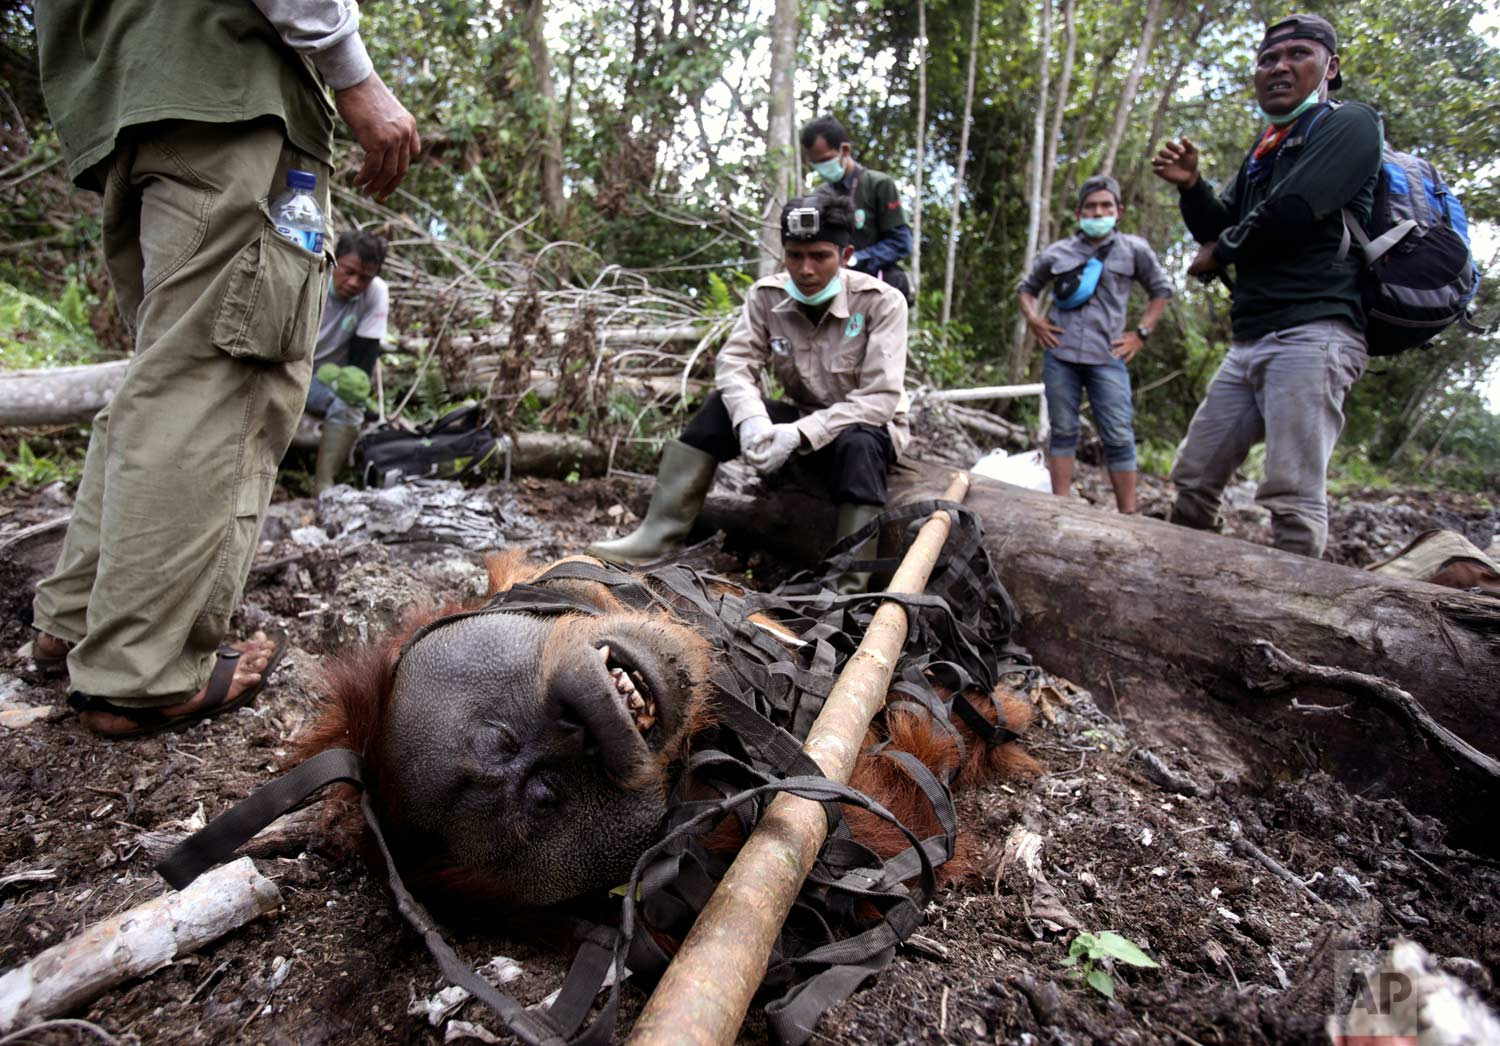 In this Thursday, Aug. 10, 2017 photo, conservationists of the Sumatran Orangutan Conservation Program (SOCP) take a break as they transport a tranquilized male orangutan to be relocated from a swath of forest located too close to a palm oil plantation at Tripa peat swamp in Aceh province, Indonesia. (AP Photo/Binsar Bakkara)